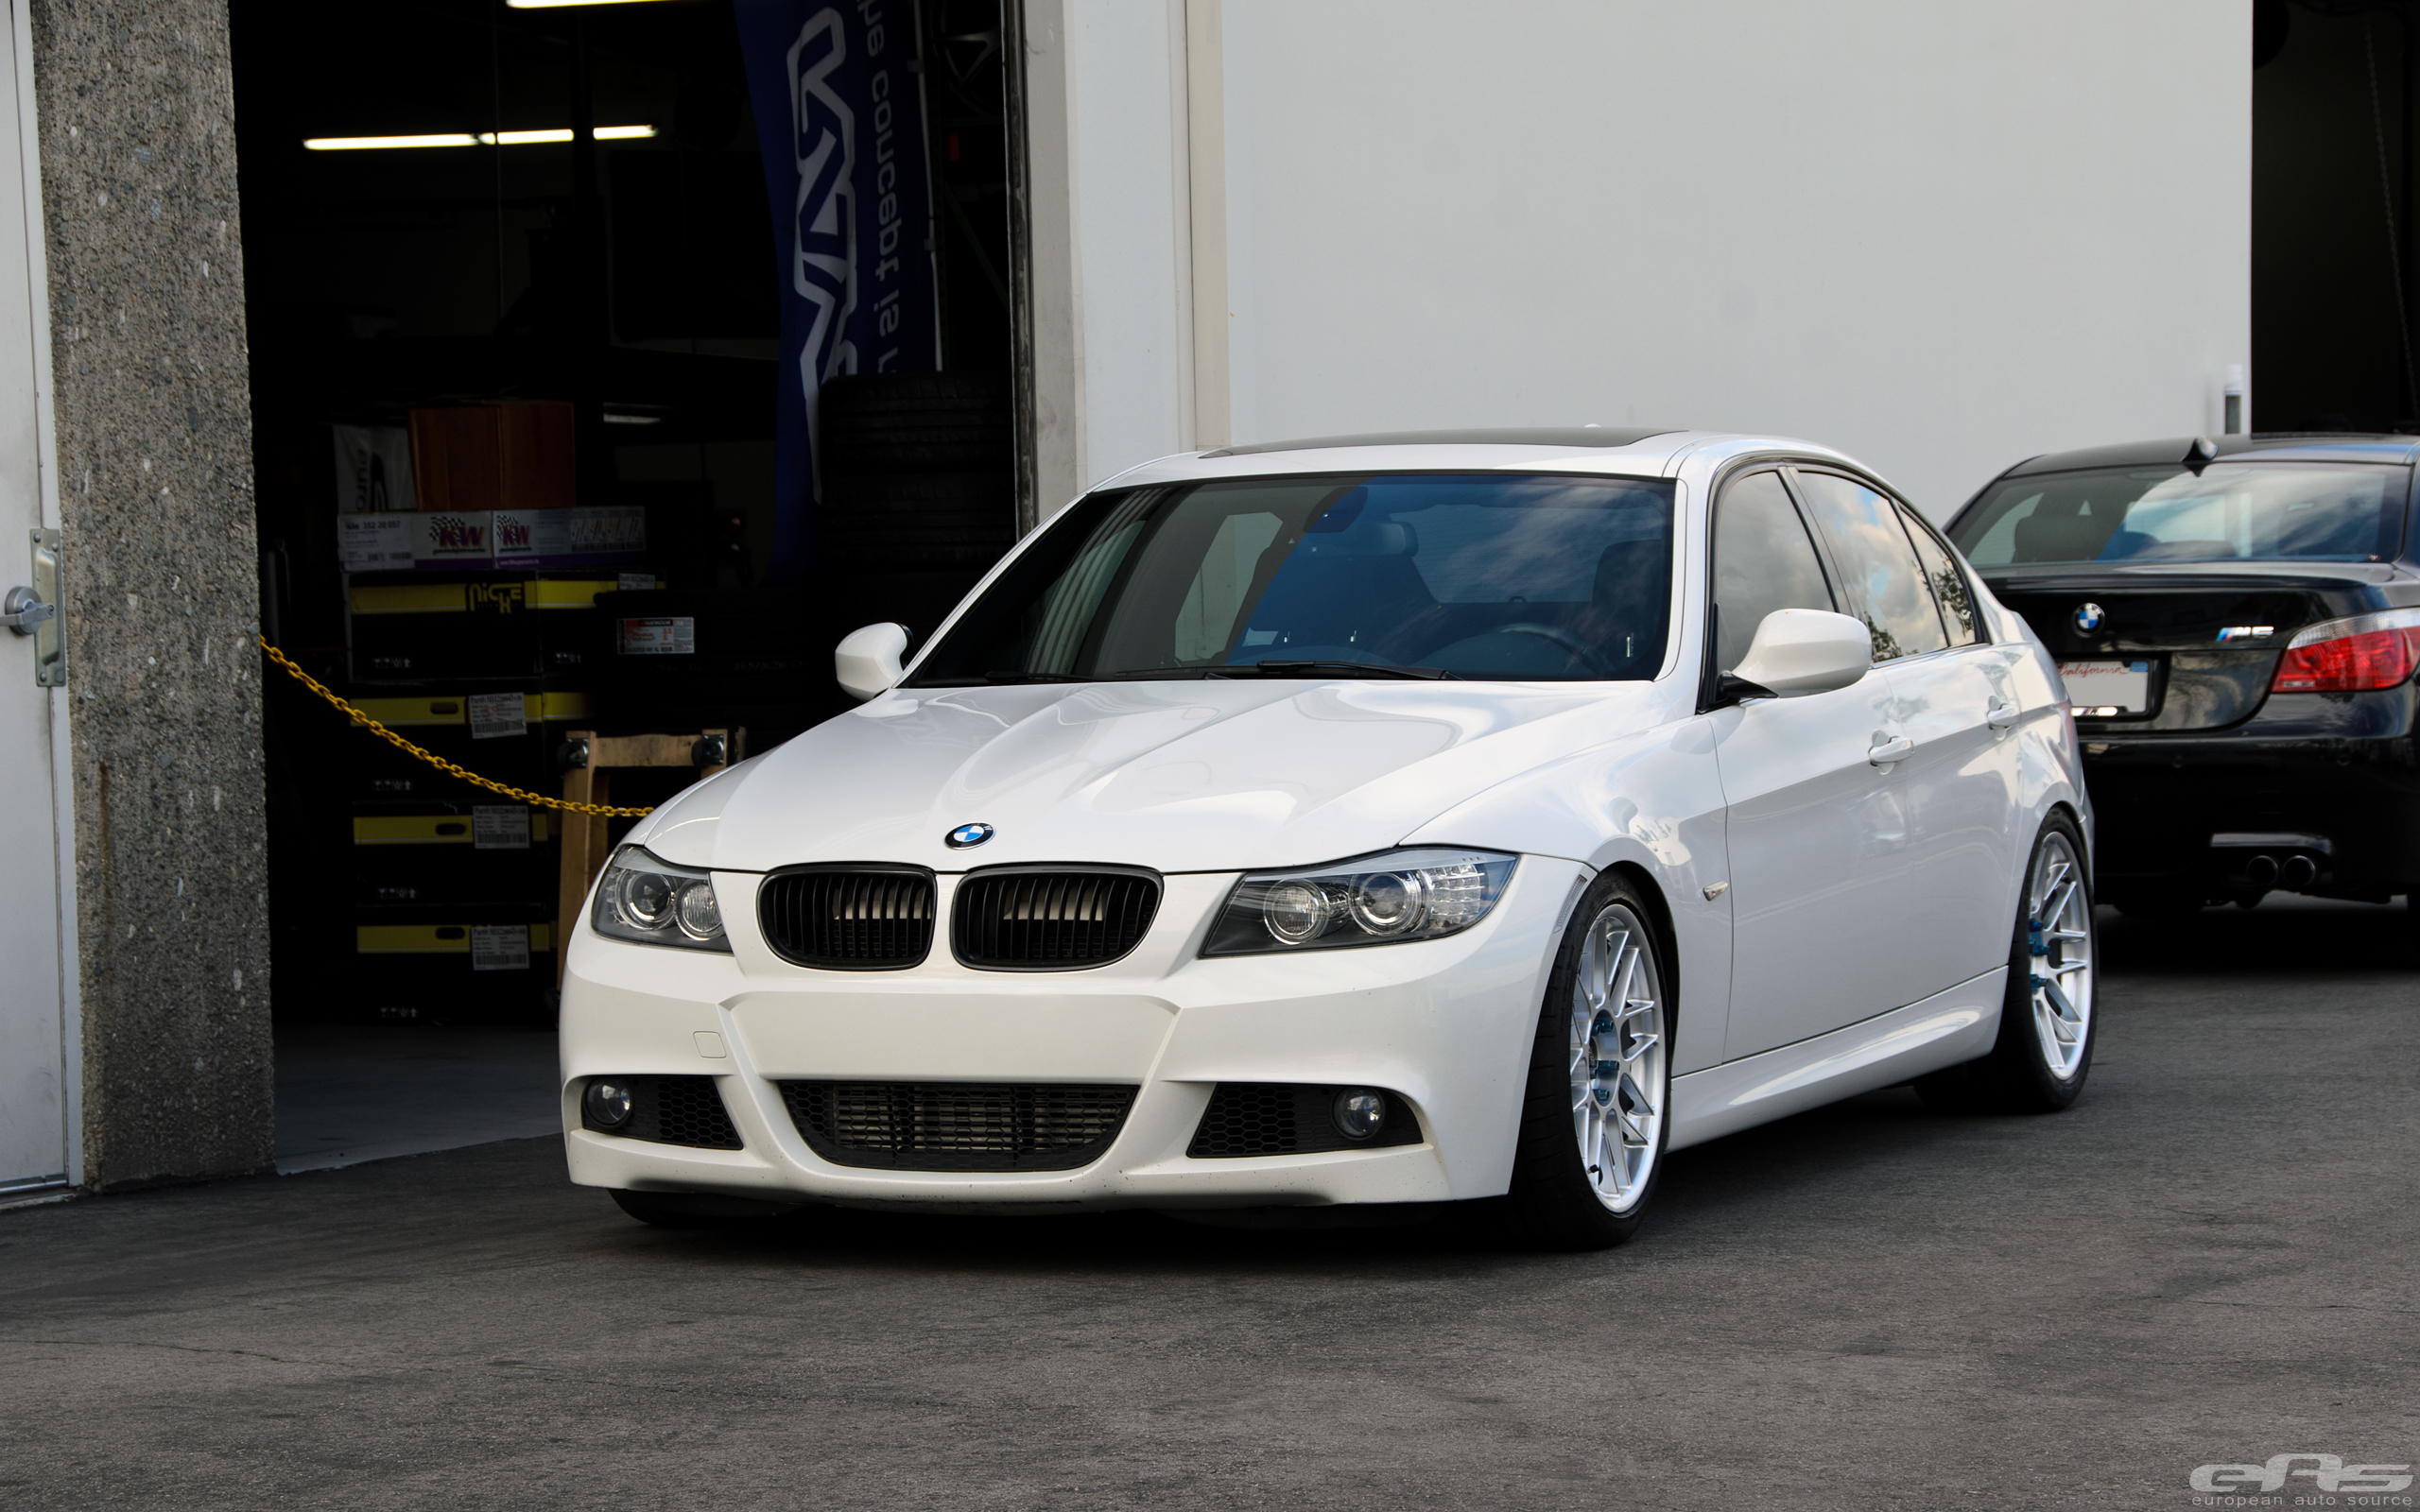 clean alpine white bmw e90 335i build by european auto source. Black Bedroom Furniture Sets. Home Design Ideas